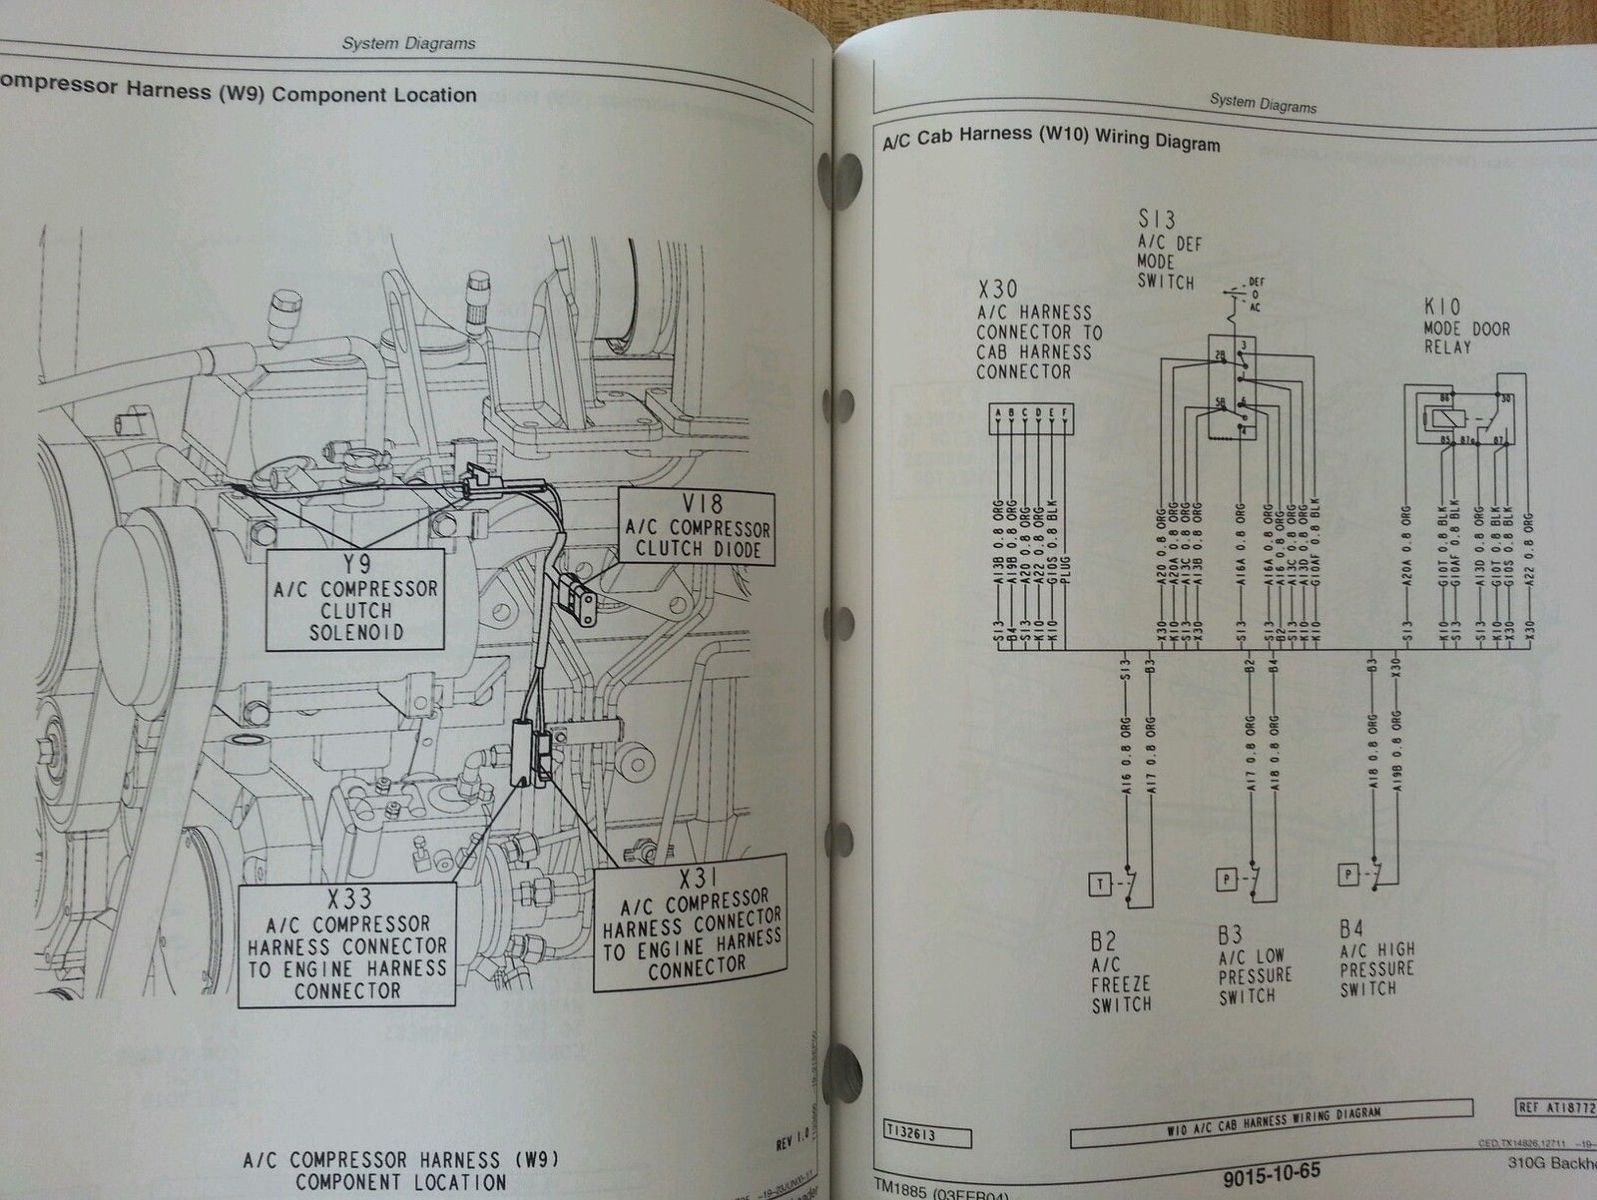 Jd 410 Engine Wiring Diagram Trusted Diagrams John Deere Backhoe Toyota